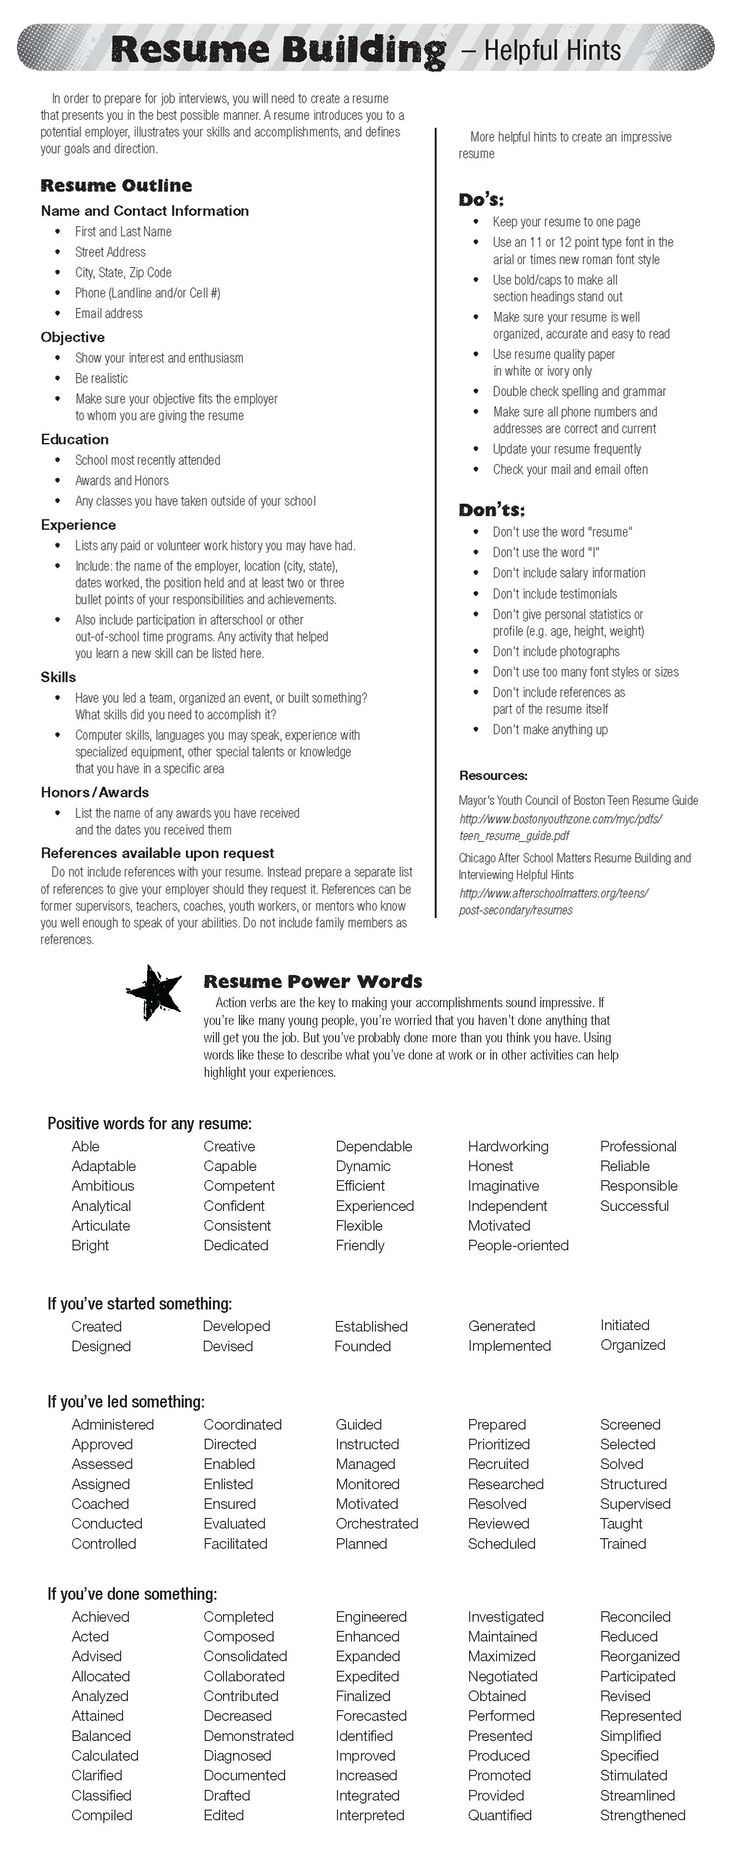 Opposenewapstandardsus  Marvelous  Ideas About Resume On Pinterest  Cv Format Resume Cv And  With Remarkable  Ideas About Resume On Pinterest  Cv Format Resume Cv And Resume Templates With Beauteous Resume Form Also It Resume Examples In Addition Strong Resume Words And How To Make A Job Resume As Well As Attorney Resume Additionally How To Write A Great Resume From Pinterestcom With Opposenewapstandardsus  Remarkable  Ideas About Resume On Pinterest  Cv Format Resume Cv And  With Beauteous  Ideas About Resume On Pinterest  Cv Format Resume Cv And Resume Templates And Marvelous Resume Form Also It Resume Examples In Addition Strong Resume Words From Pinterestcom